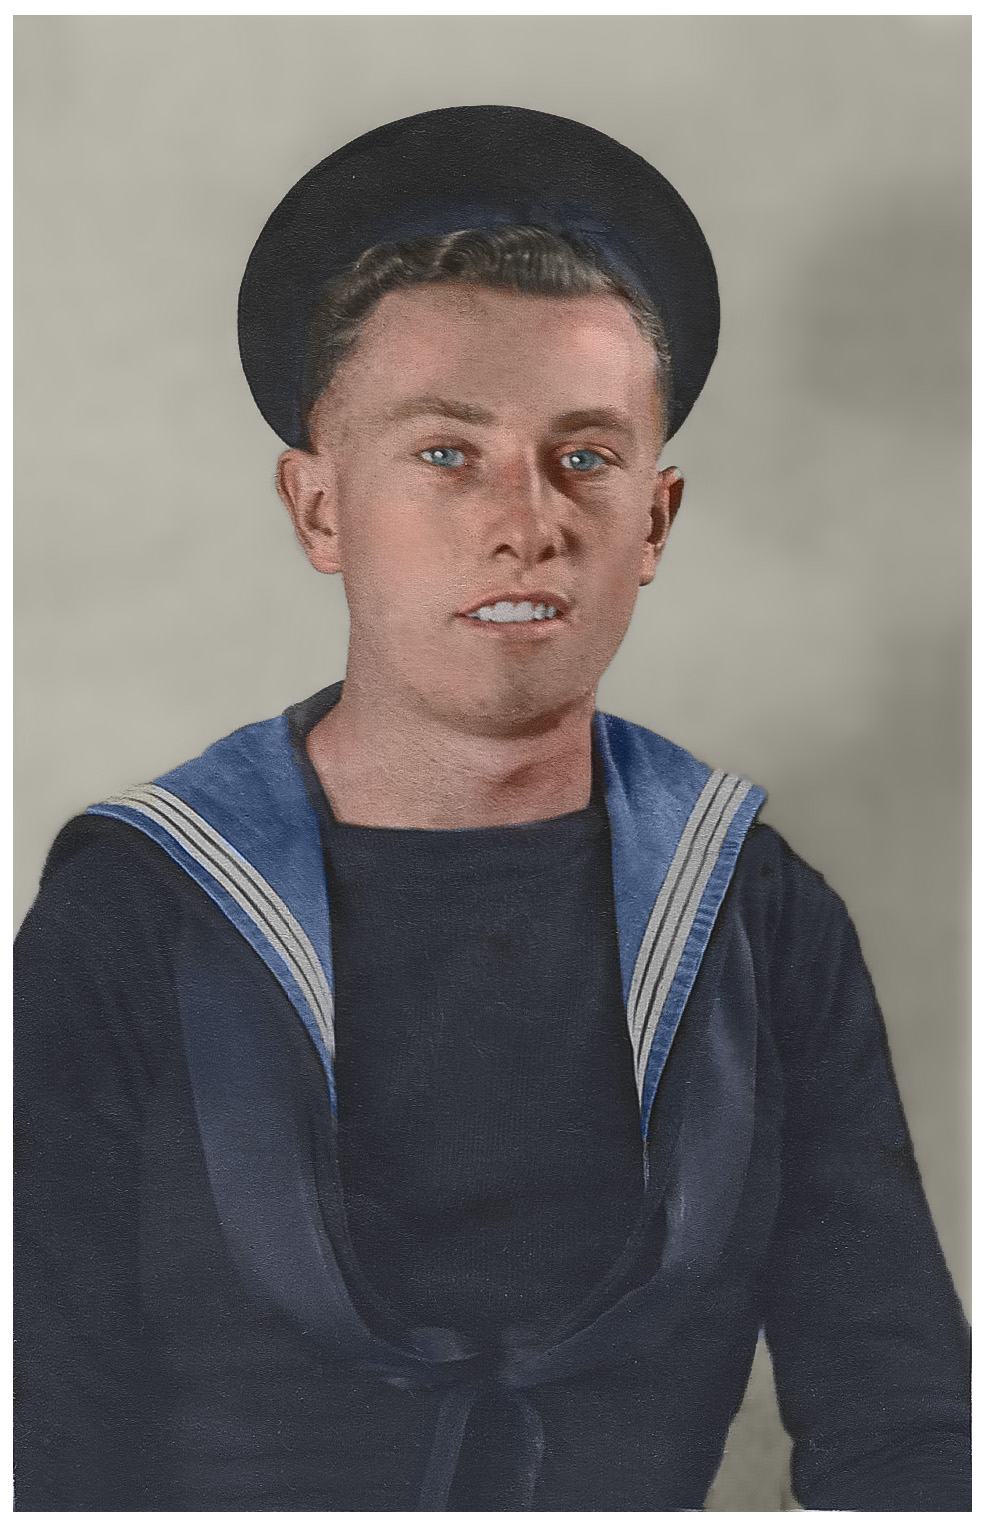 Royal Navy Photo Colourisation